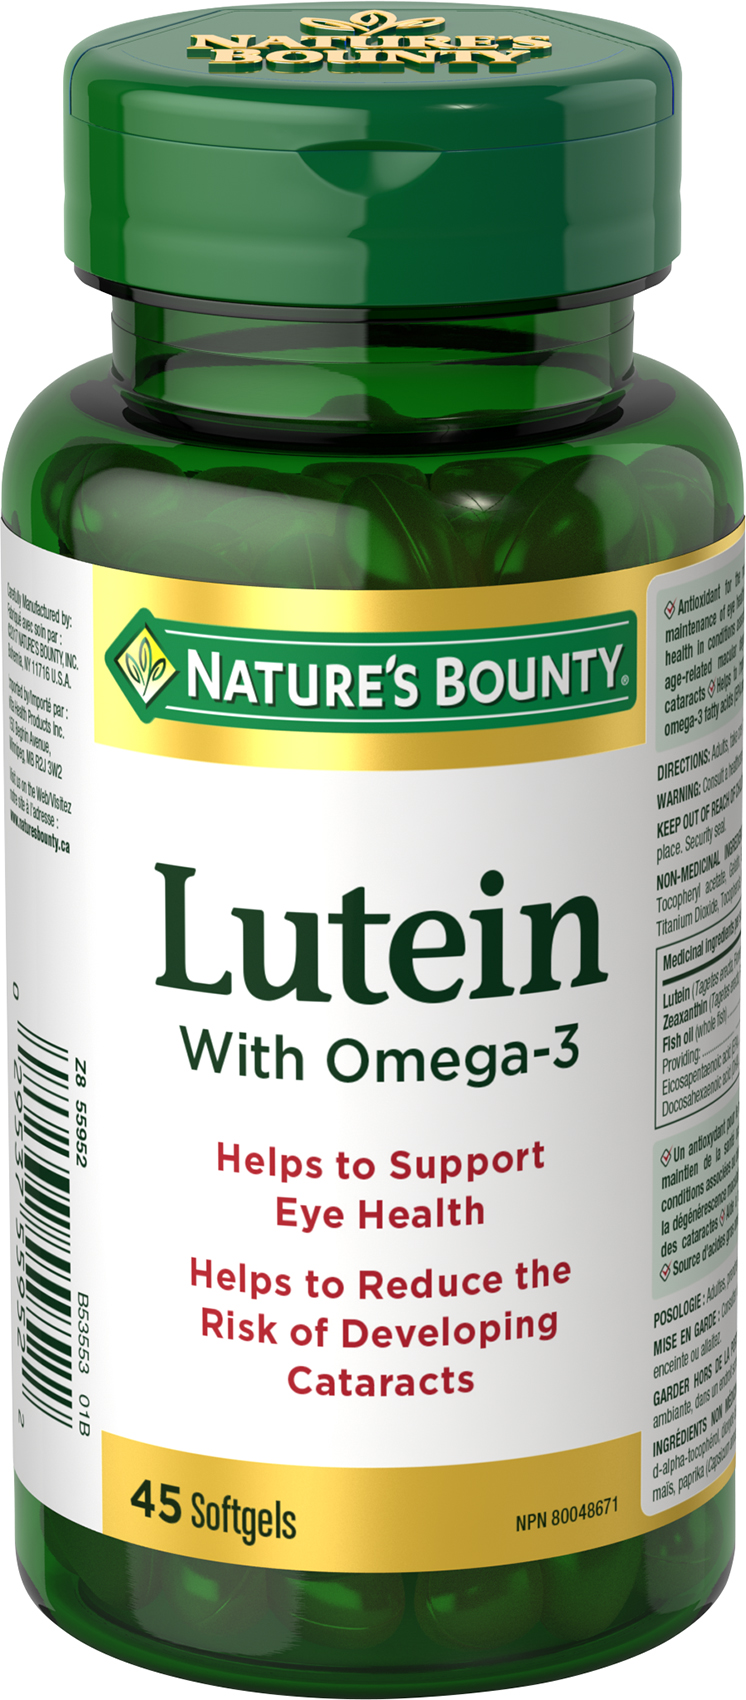 Lutein with Omega 3